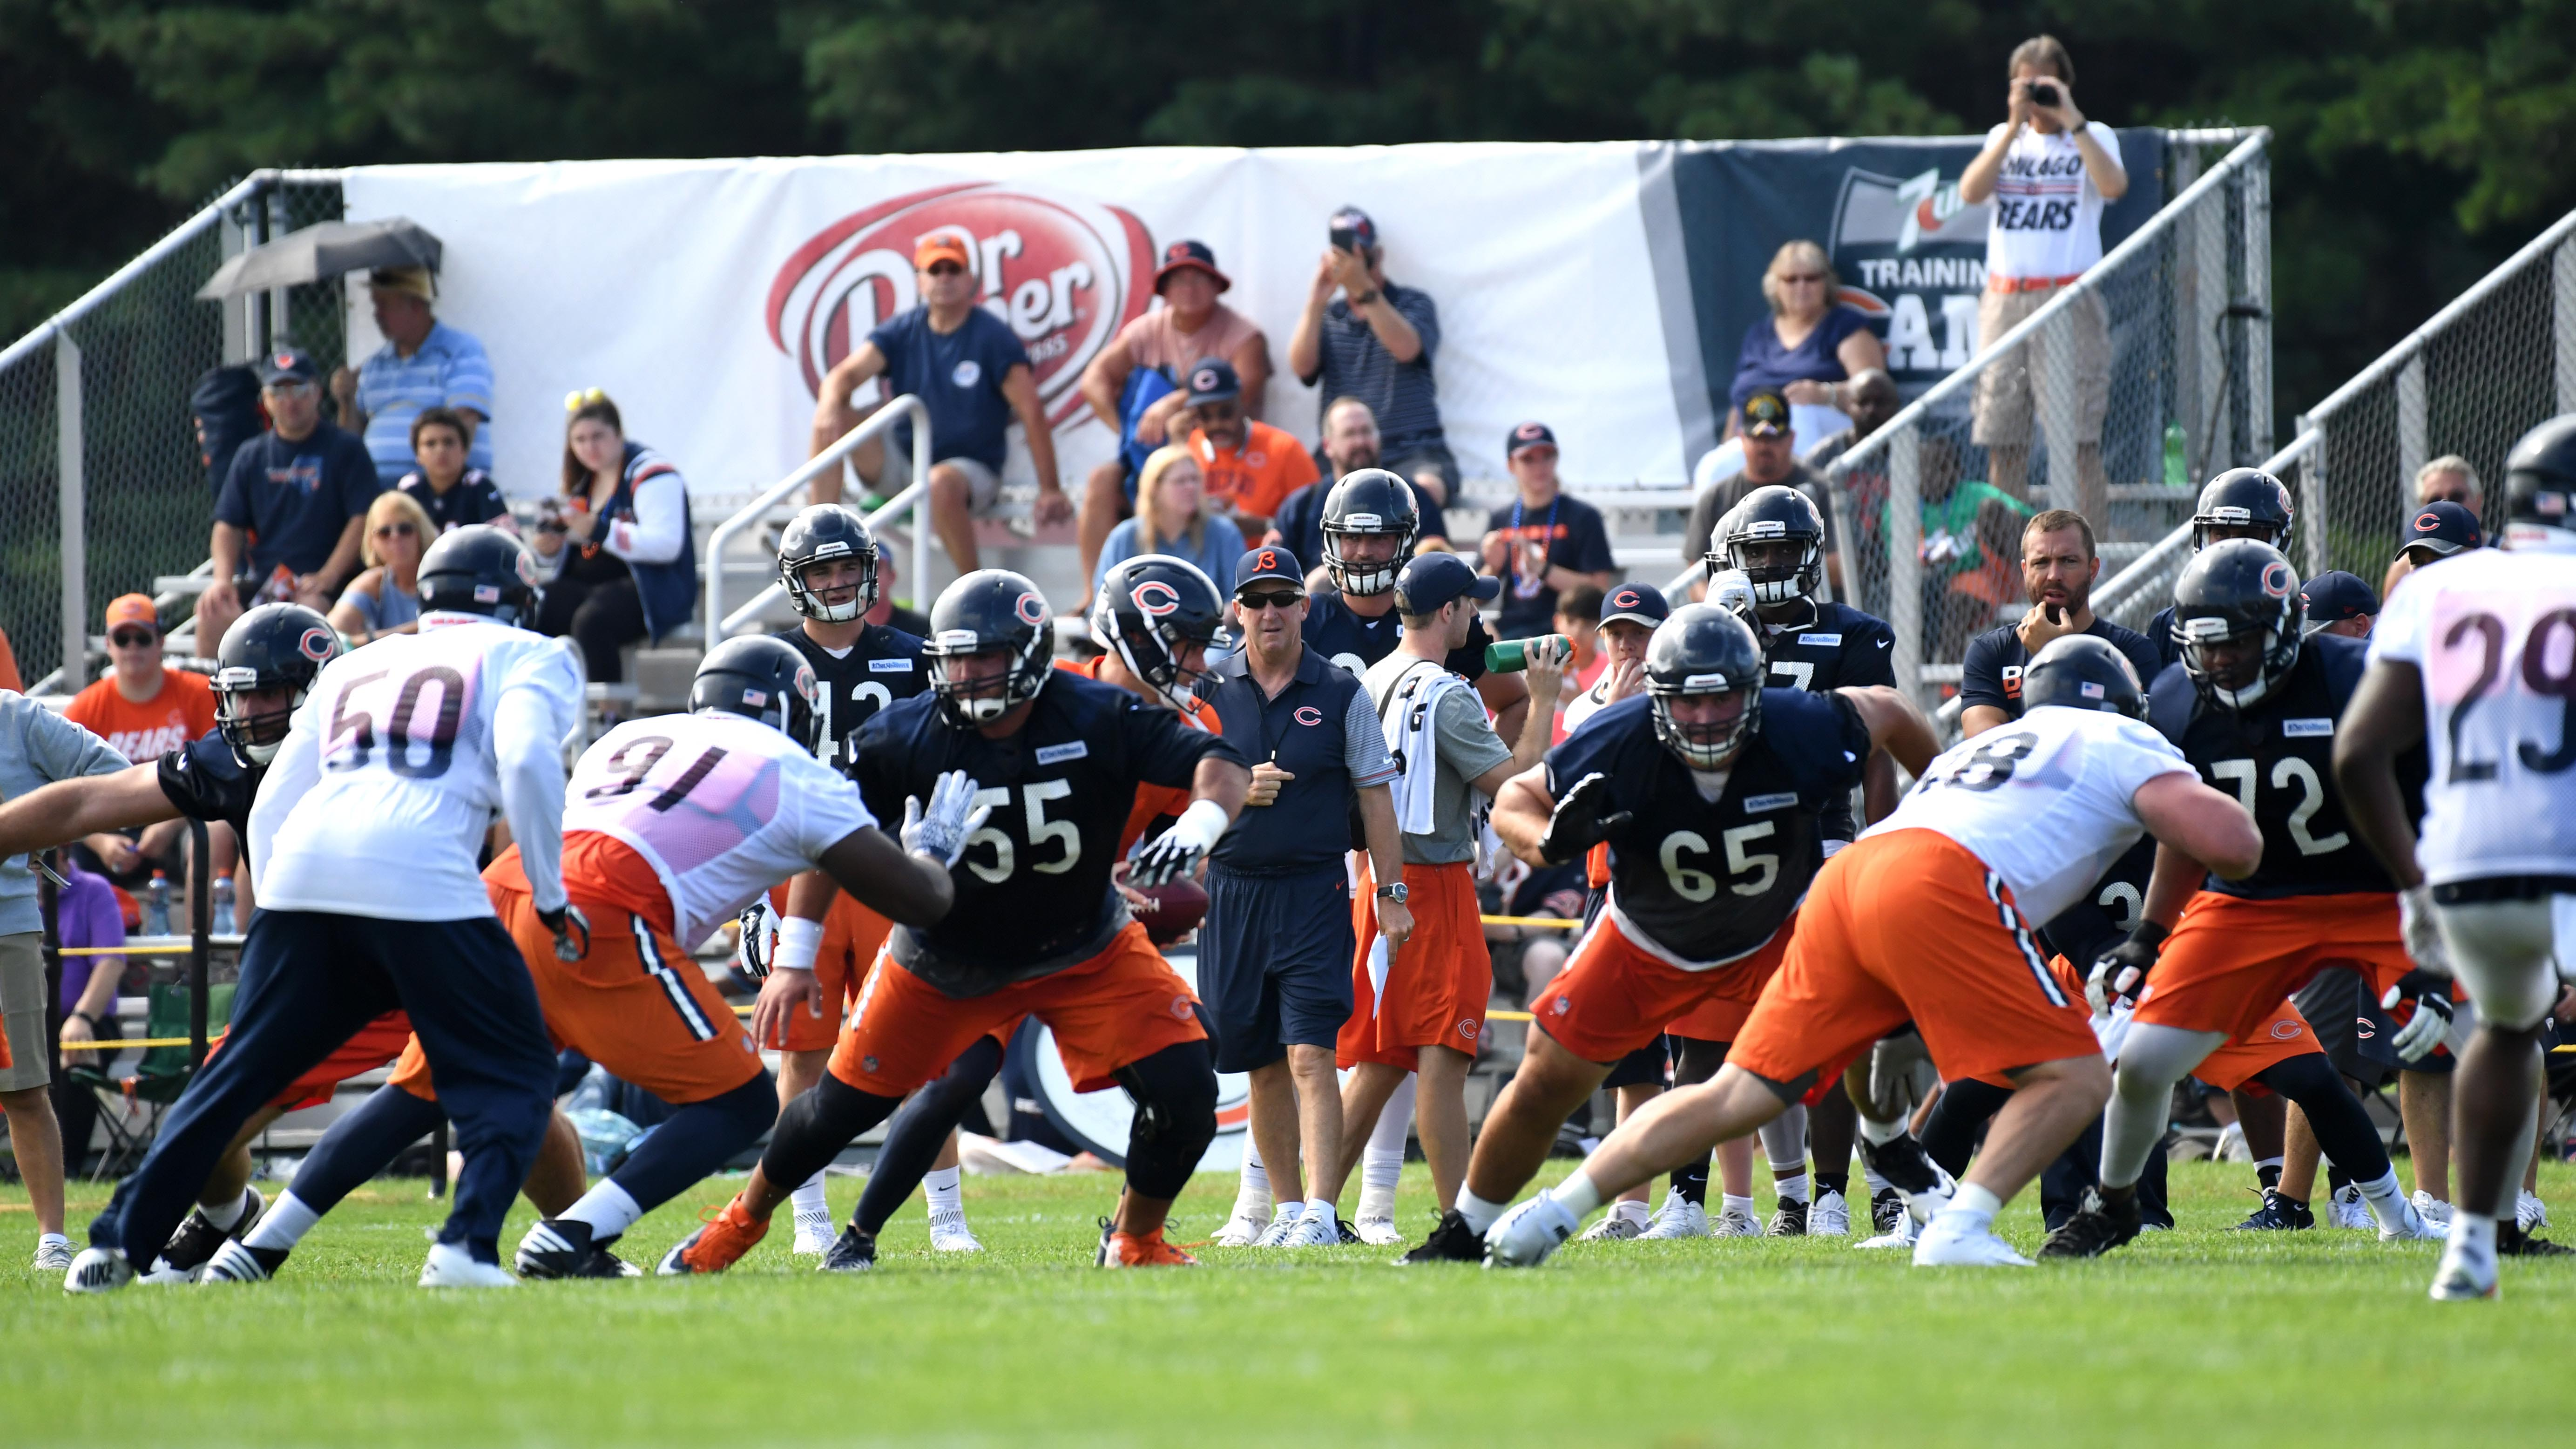 9407764-nfl-chicago-bears-training-camp